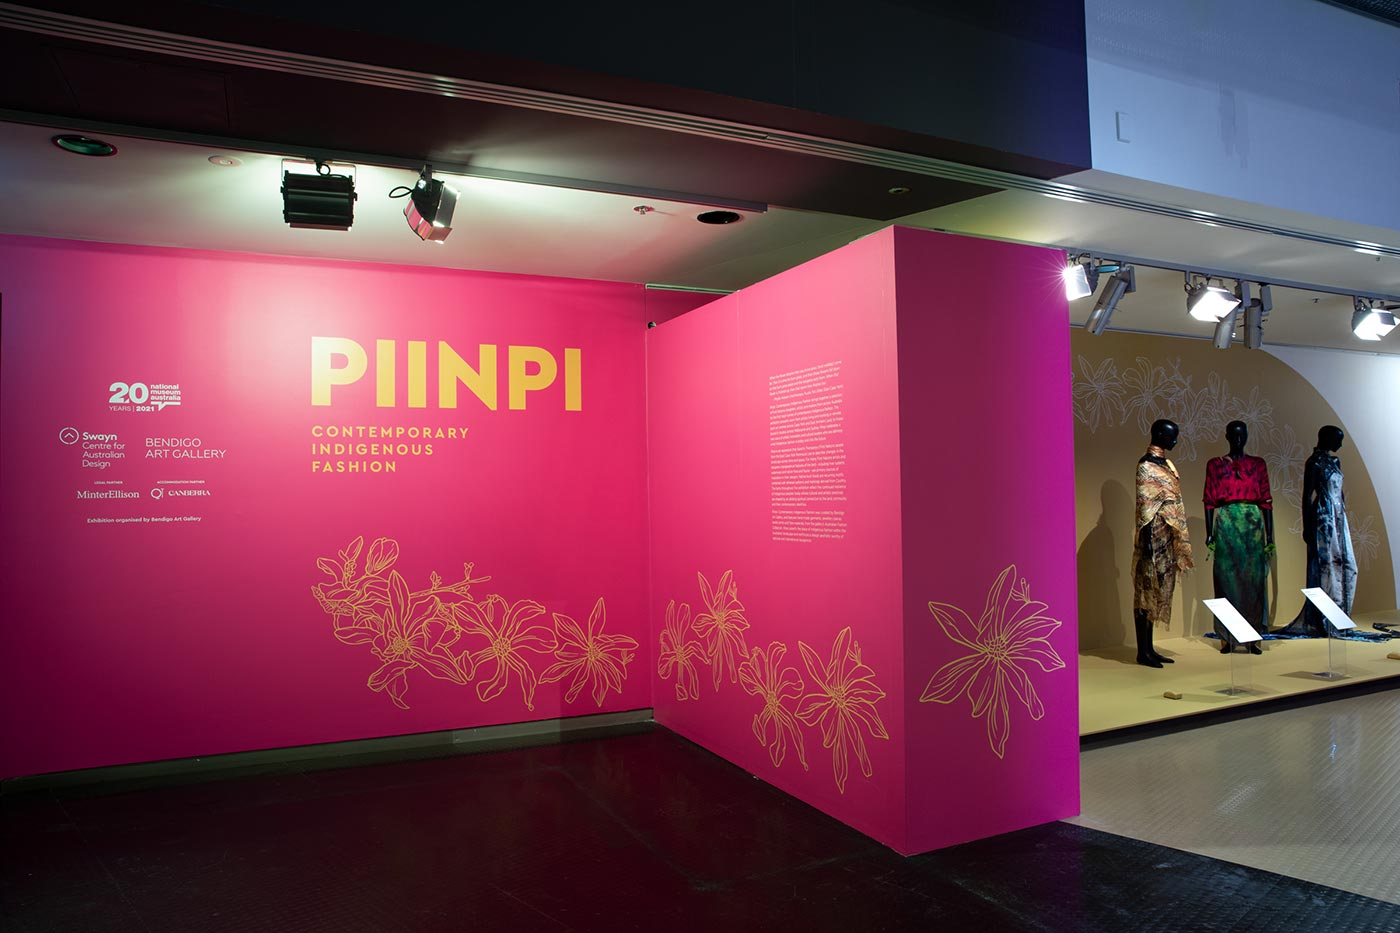 Entry to the Piinpi: Contemporary Indigenous Fashion exhibition. - click to view larger image